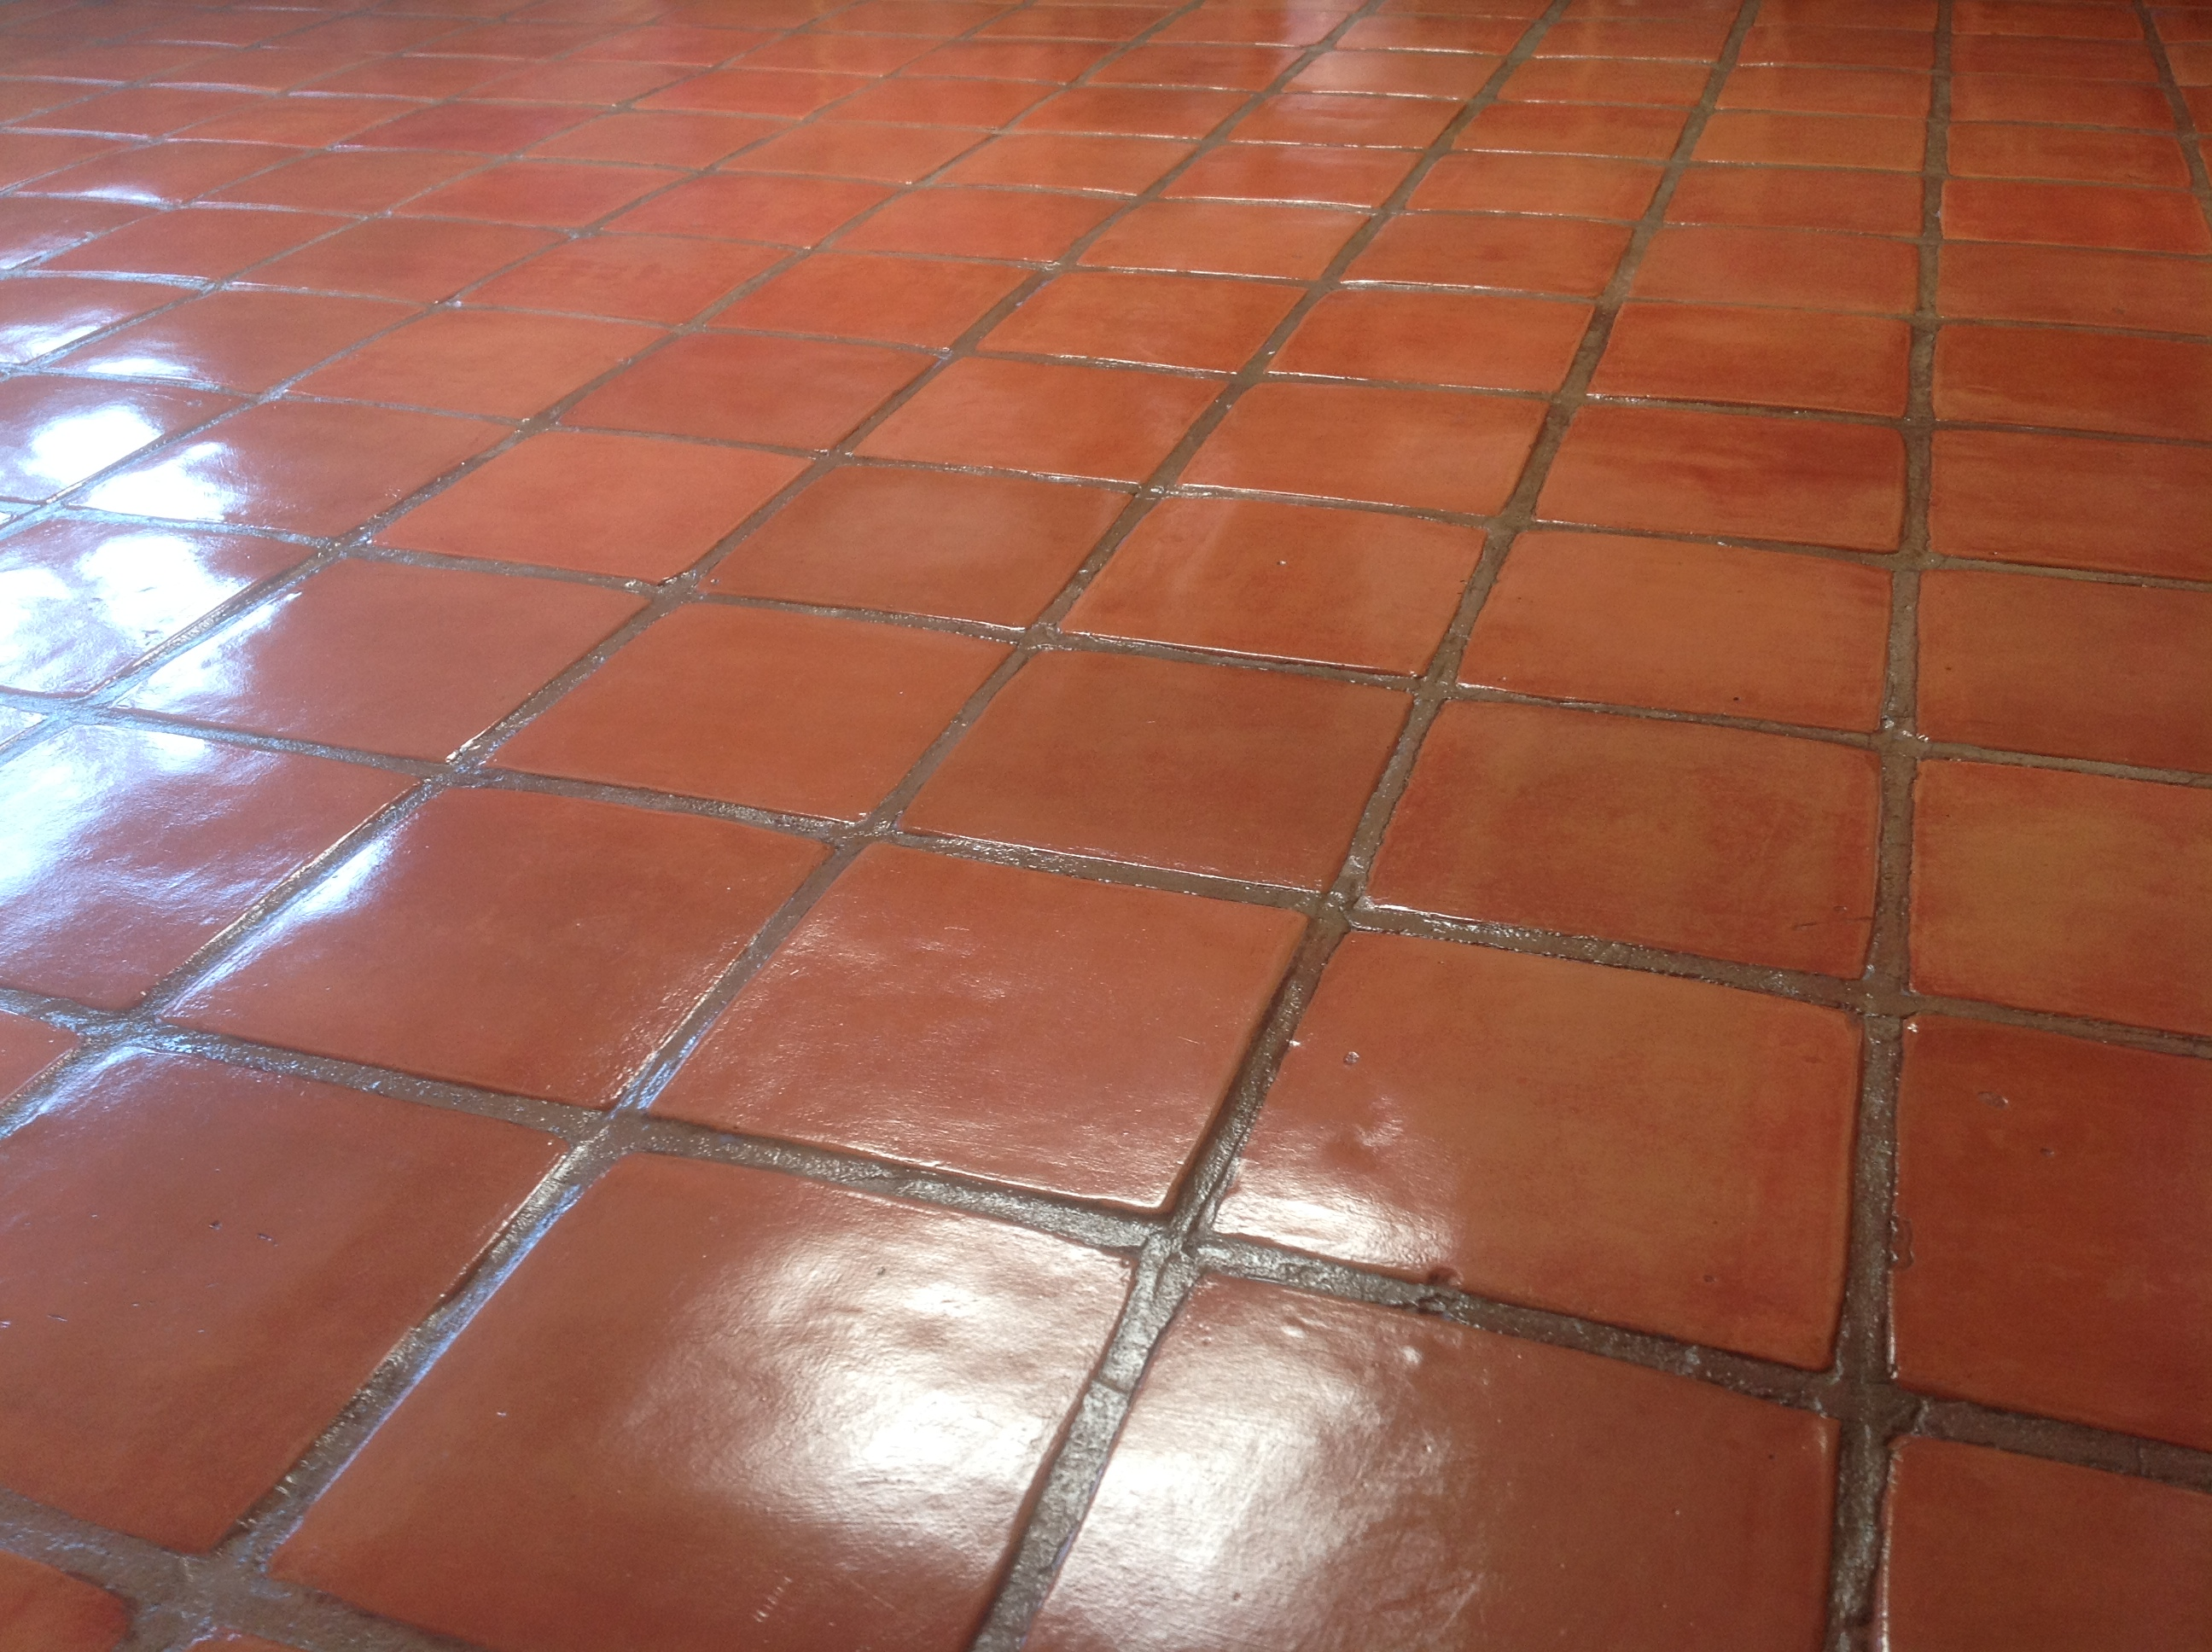 Sausalito tile floor and decorations ideas floor and decorations ideas staining and sealing saltillo tile the correct way california stained mexican saltillo tile shiifo dailygadgetfo Image collections